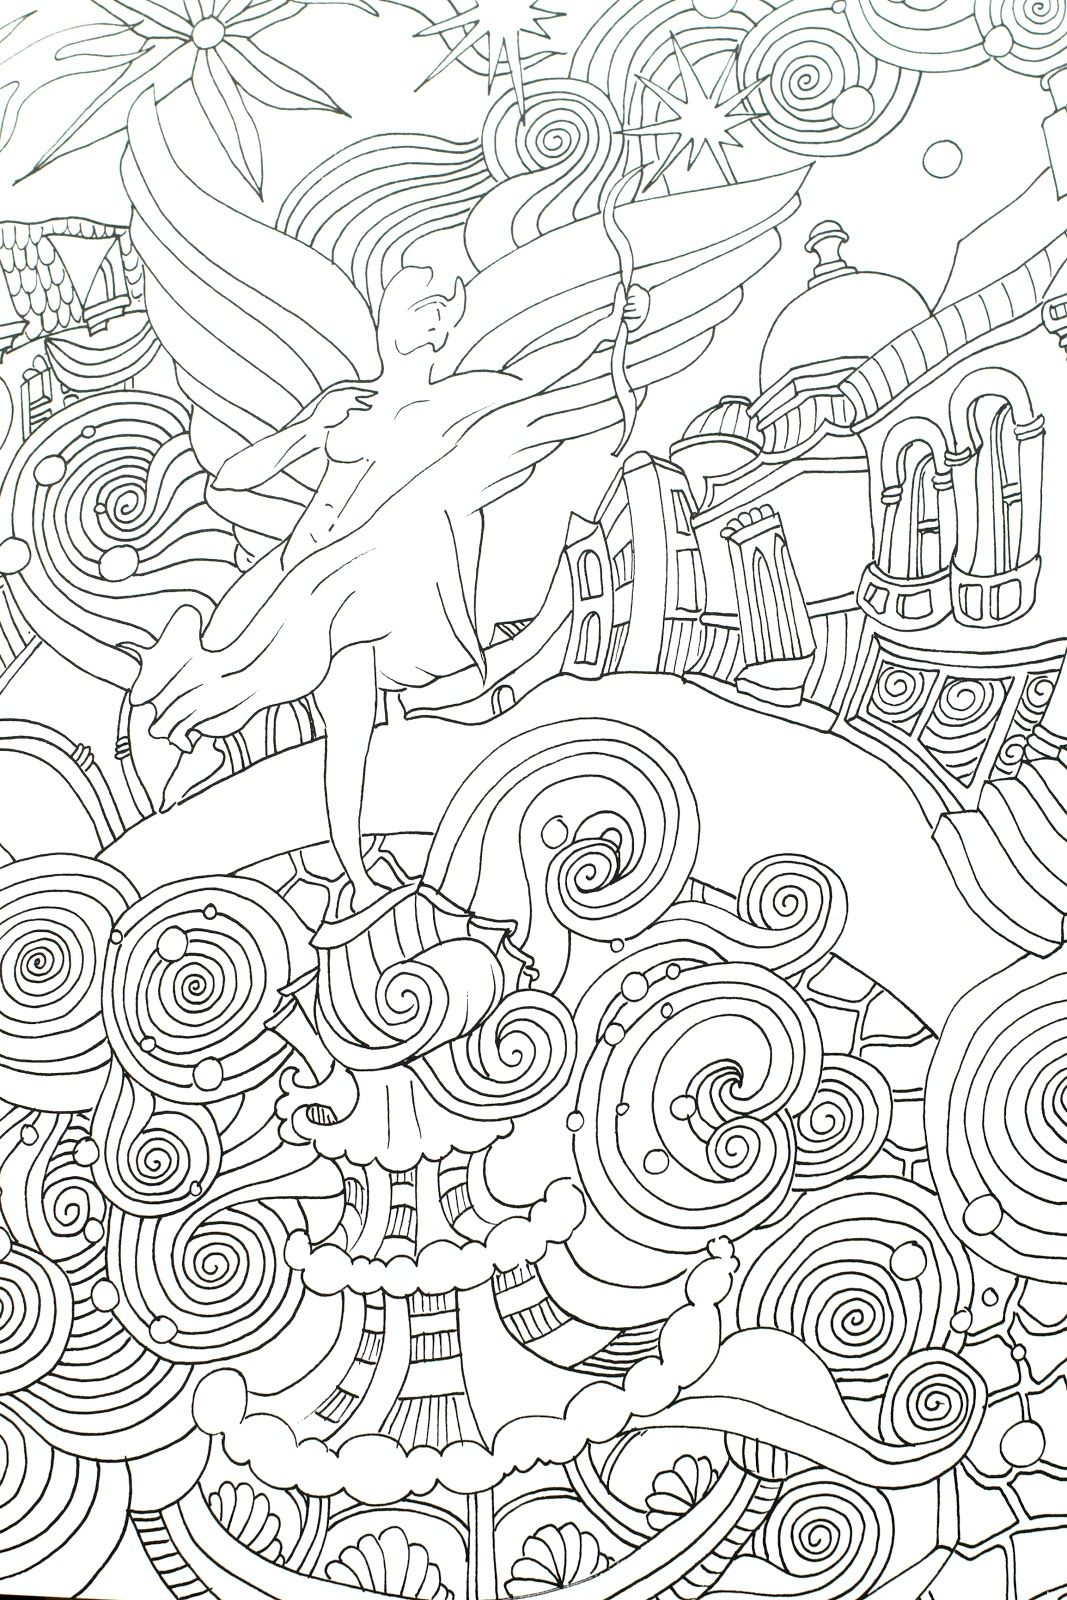 The Magical City Coloring Book | Color Me Crazy | Pinterest ...